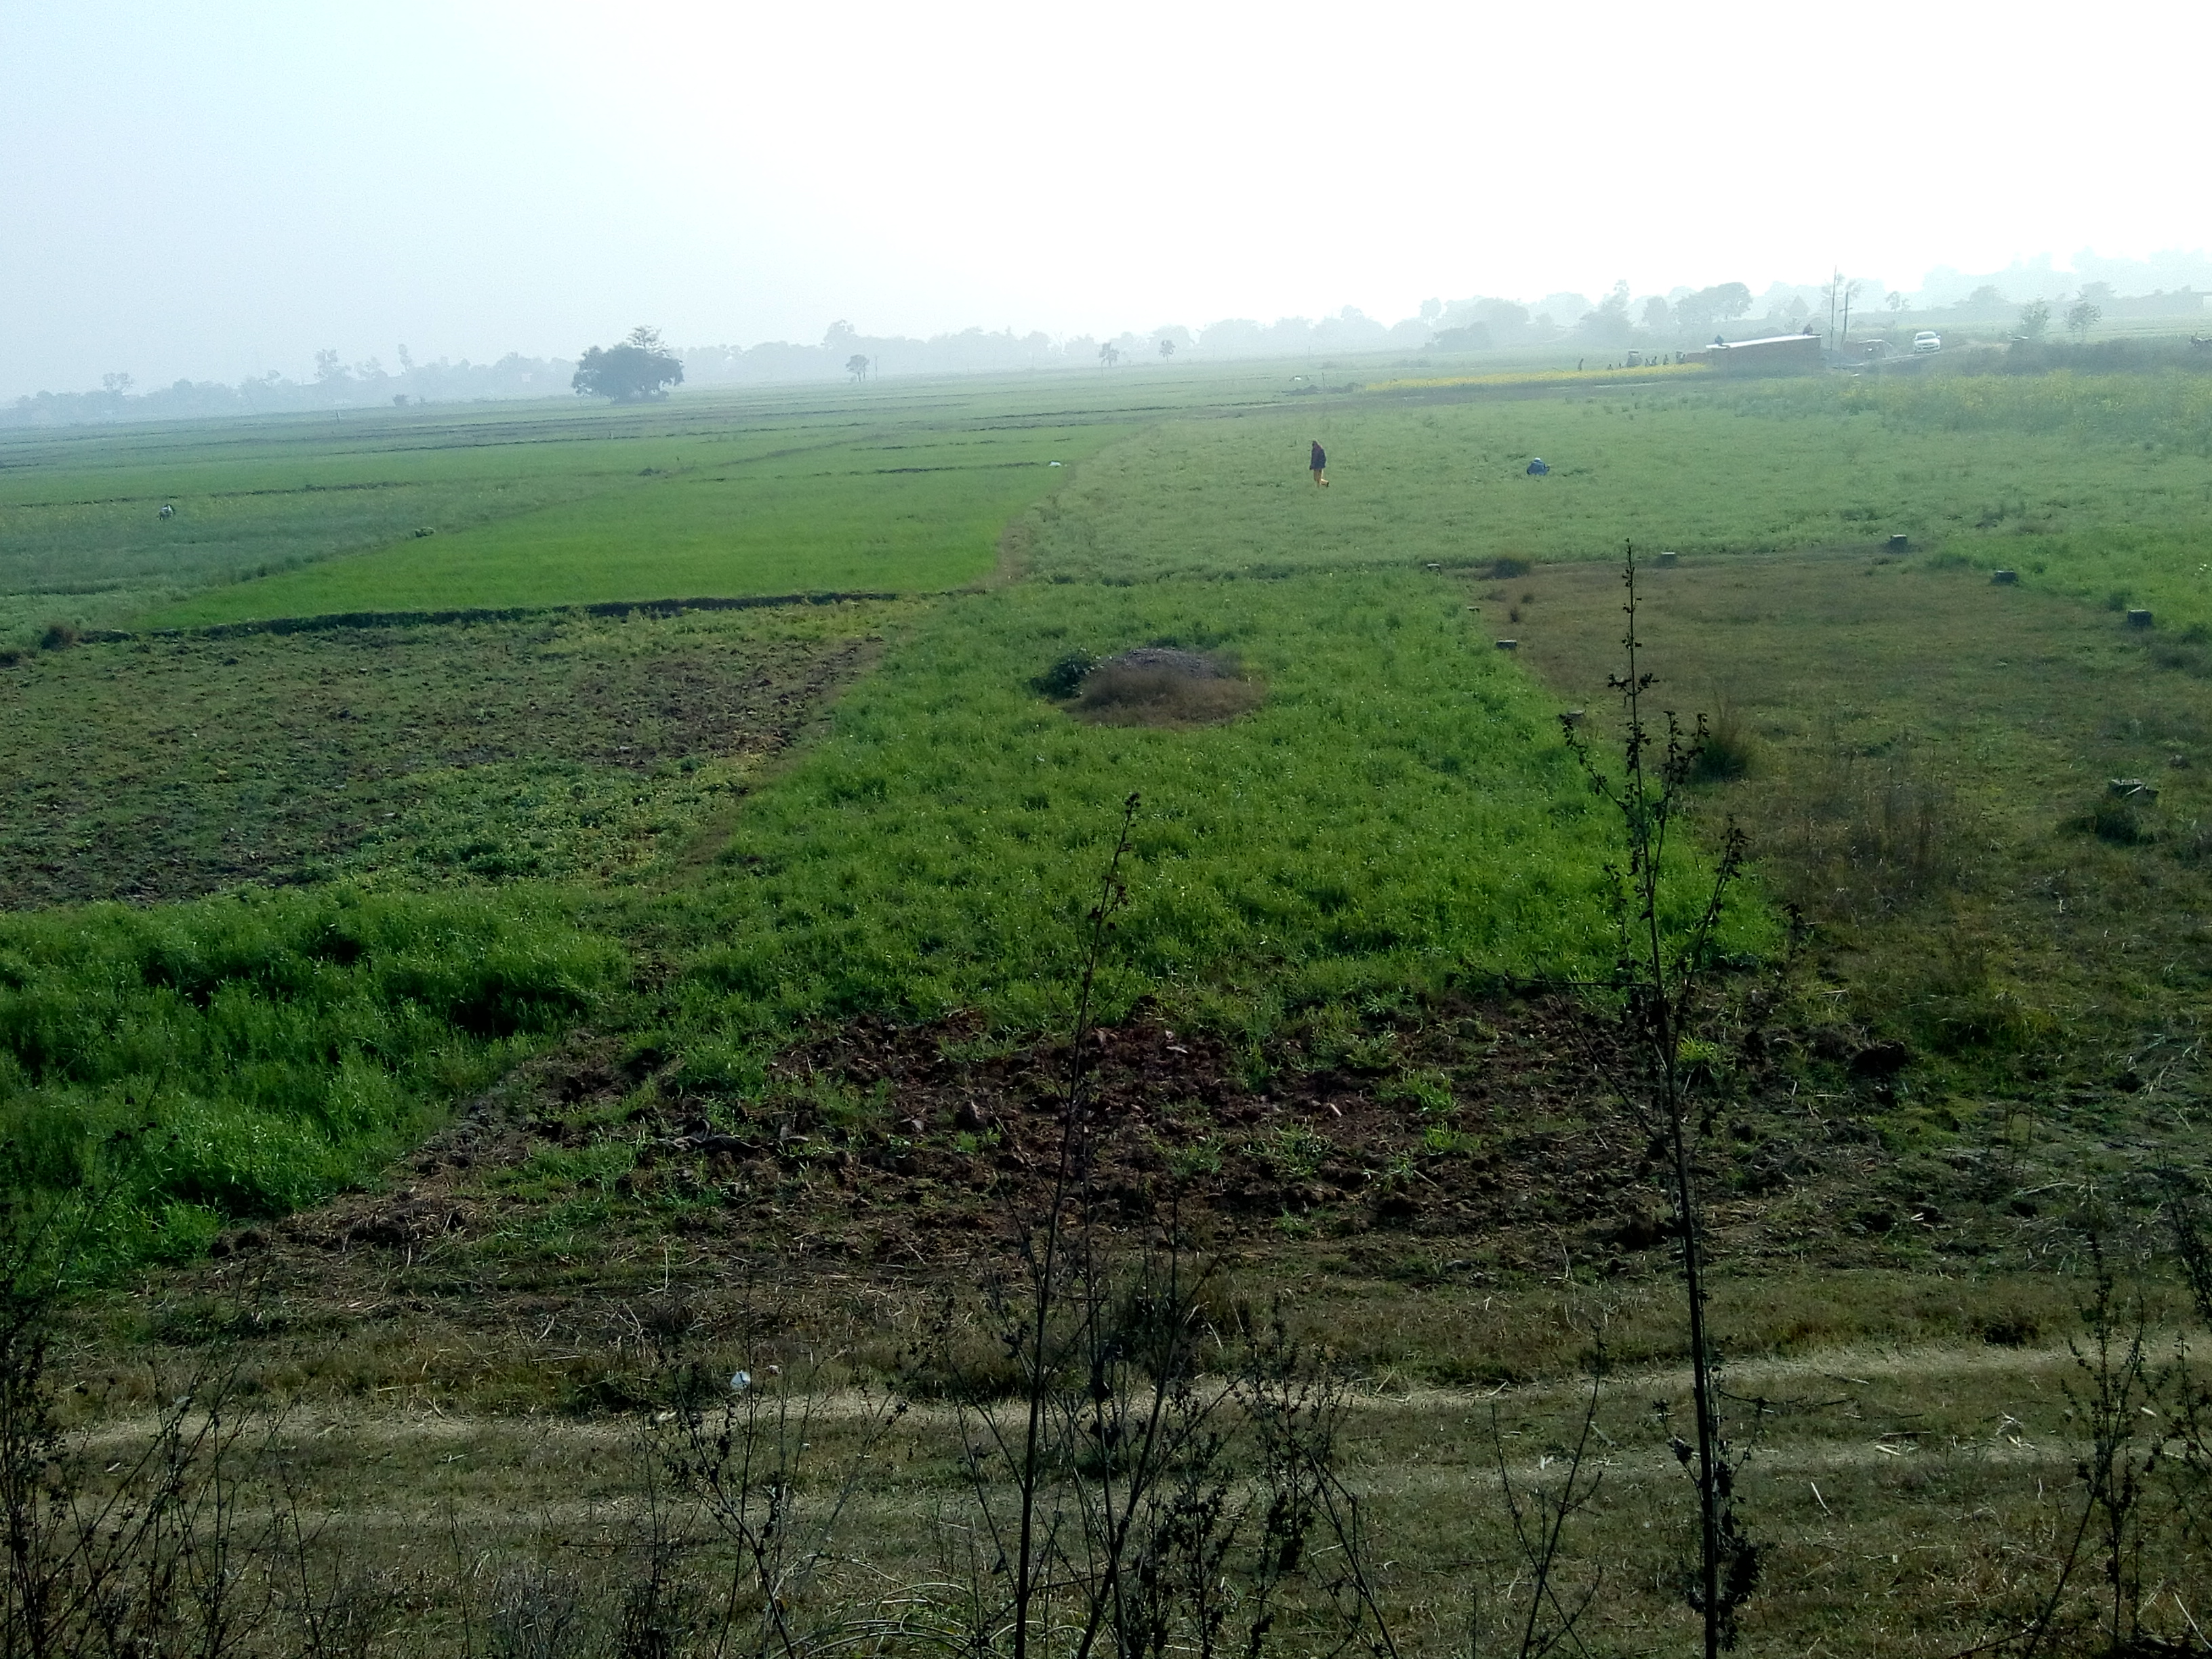 Agriculture Plot For Sale In Dulhin Bazar- Paliganj Area